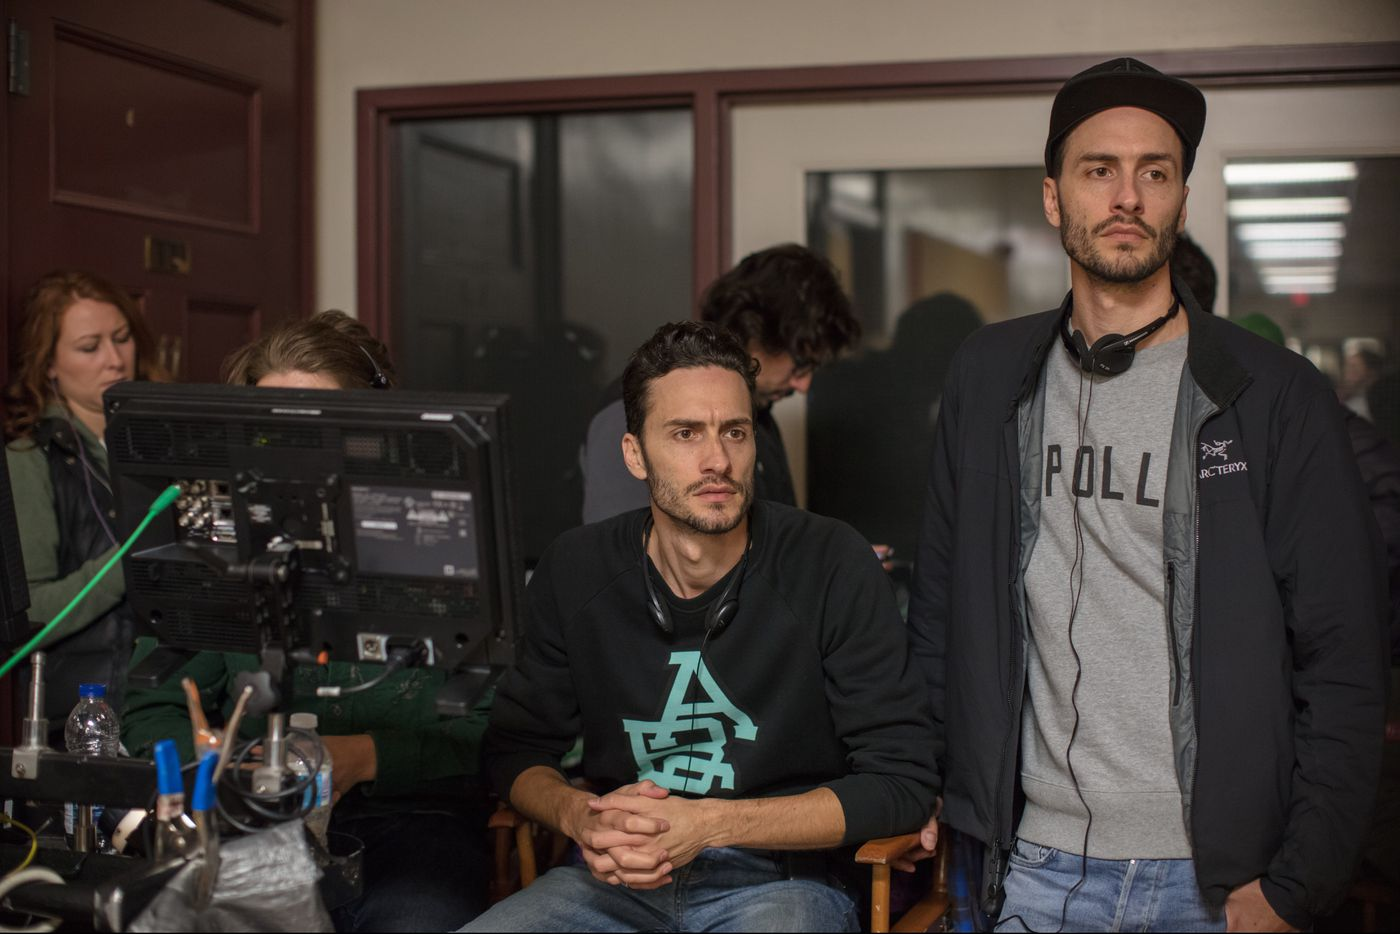 These Aussie brothers went from Sixers hype video to sci-fi flick 'Kin'